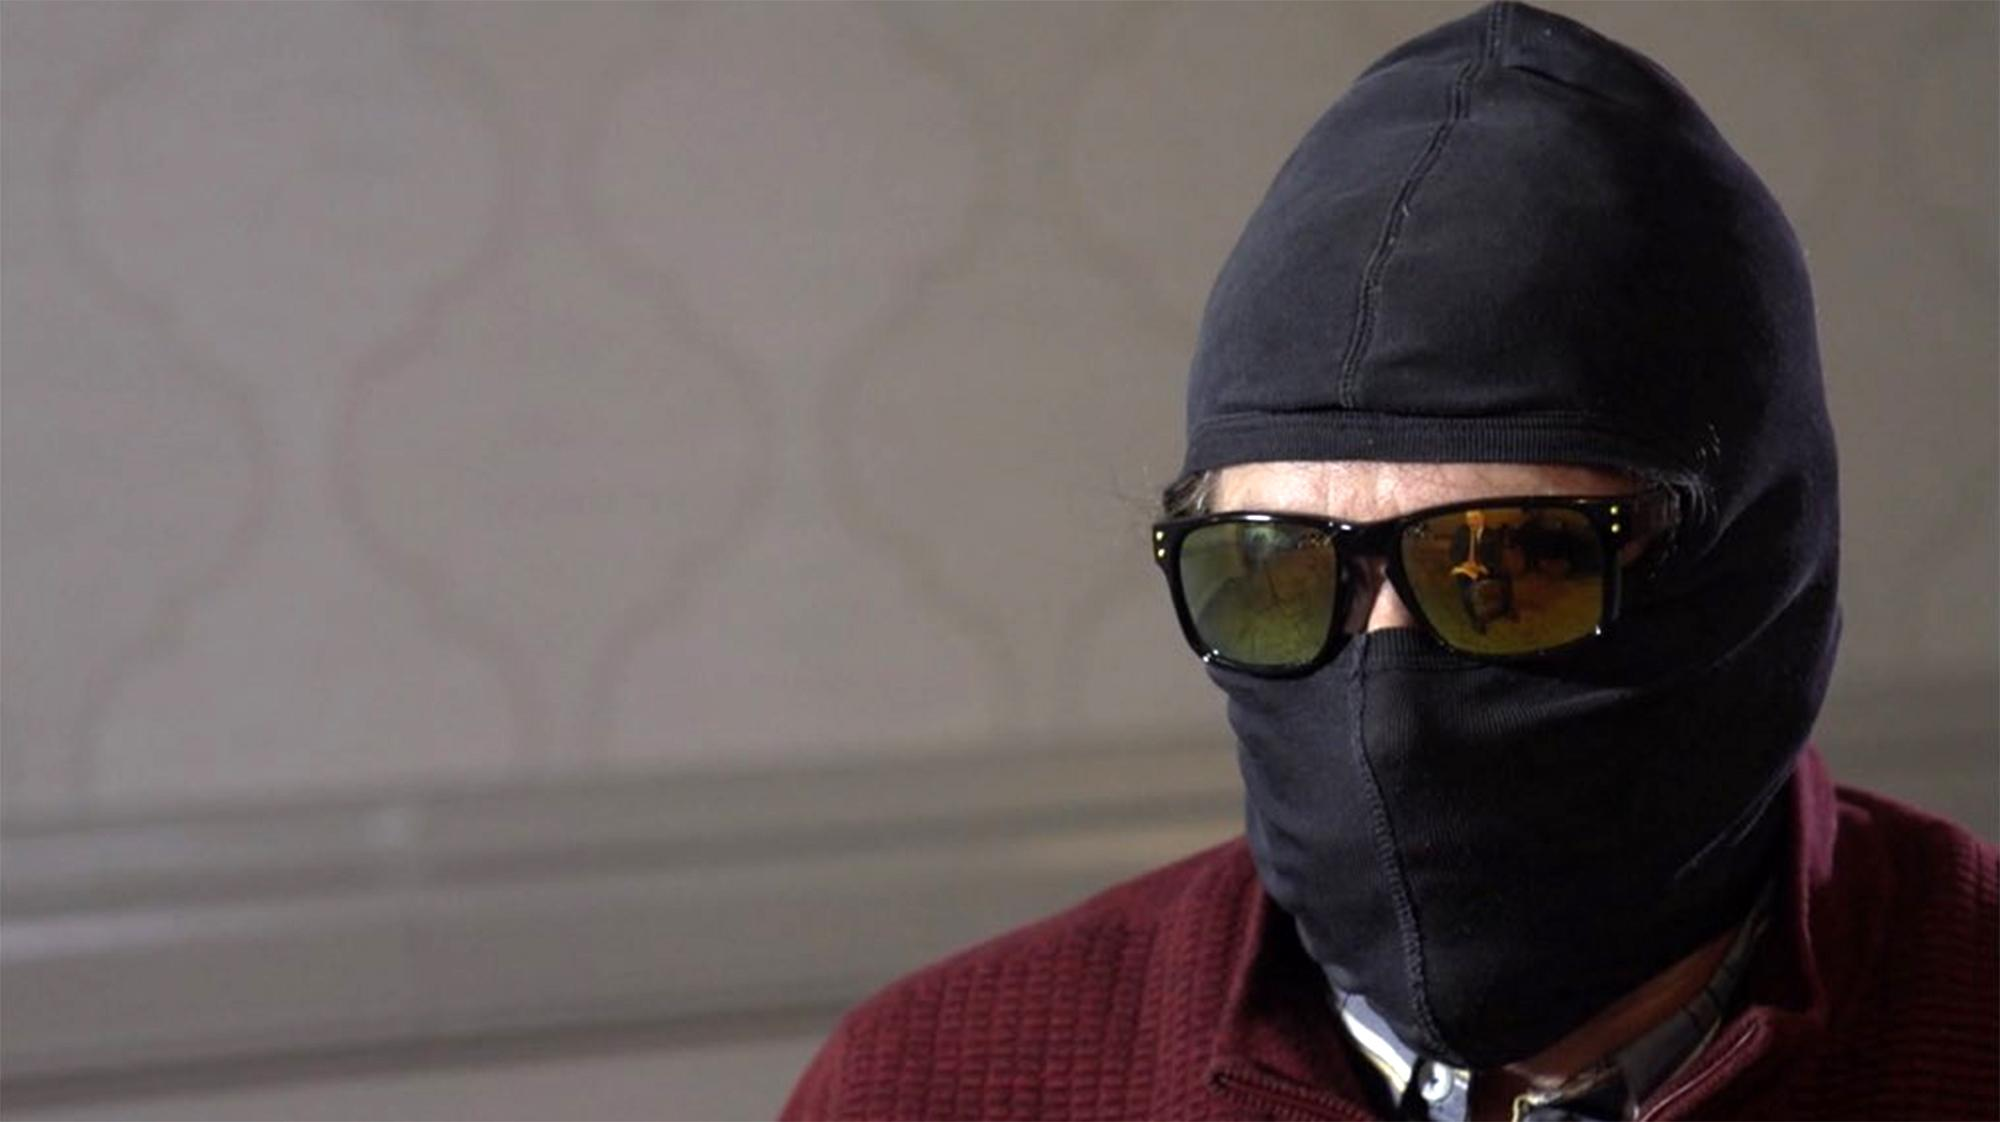 Rodchenkov kept his identity covered during an interview with the BBC